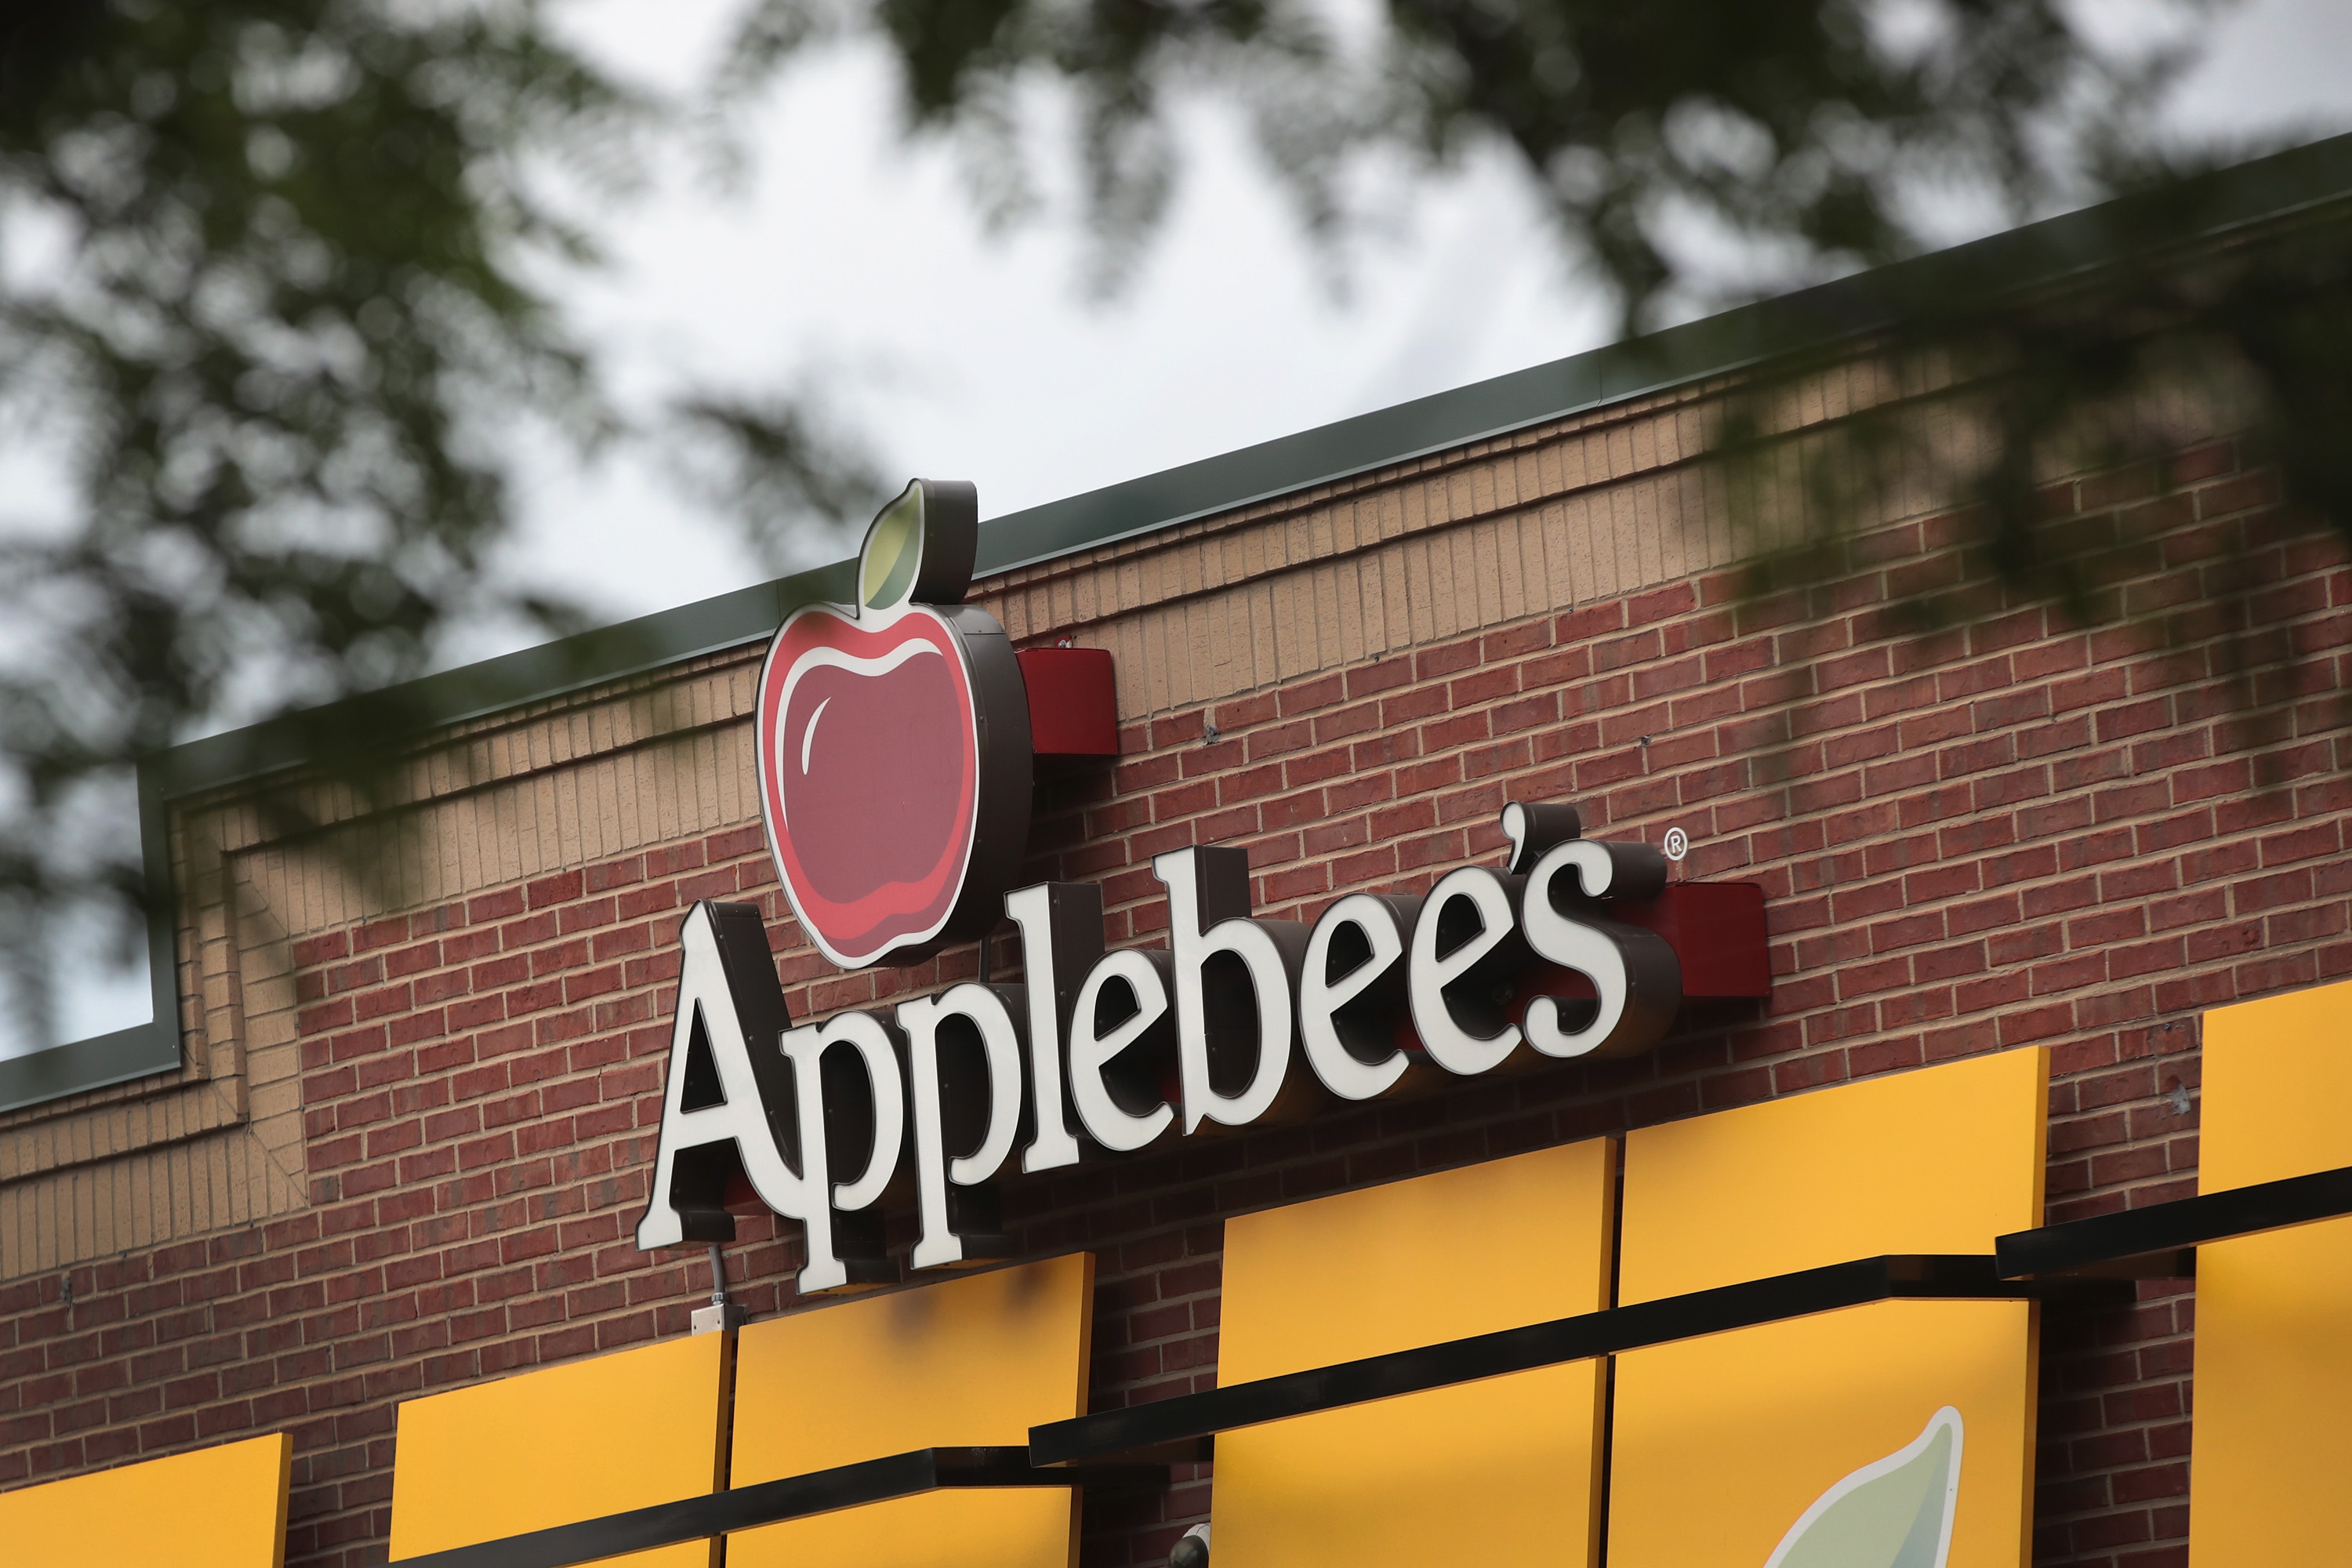 Applebee's fired me after I booted bar customer making anti-Muslim comments, supervisor says in suit